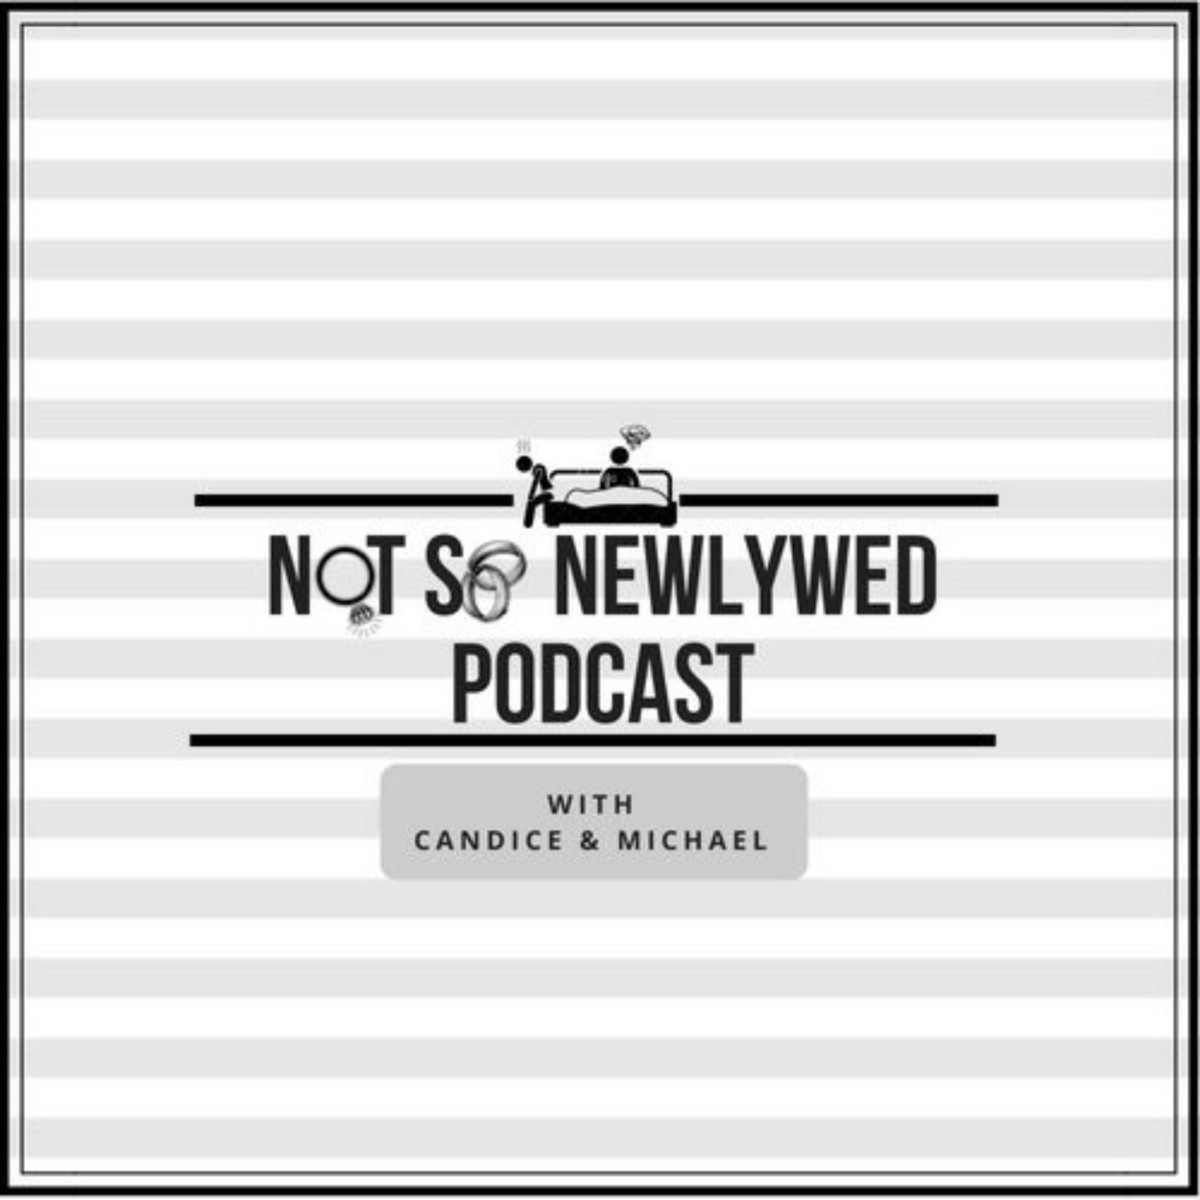 Not So Newlywed Podcast Ep 10 - Mental Health and Love featuring Byron